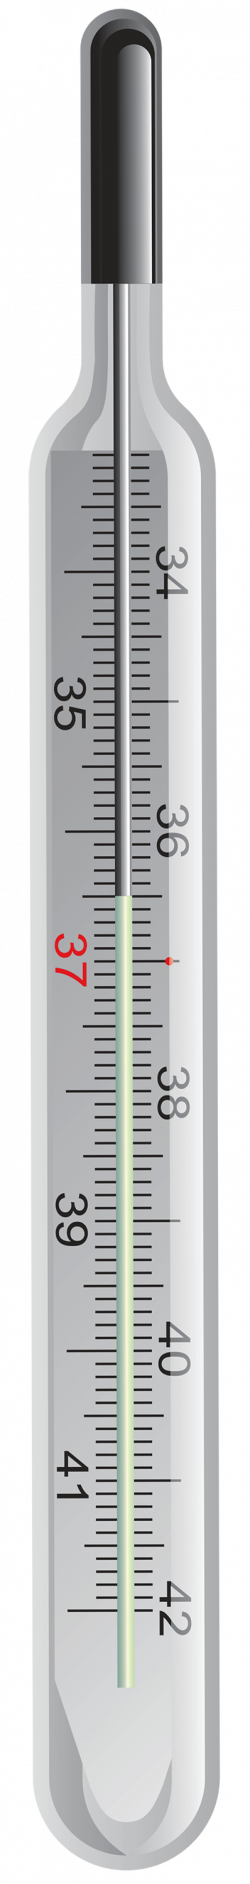 Thermometer PNG Clip Art - Best WEB Clipart